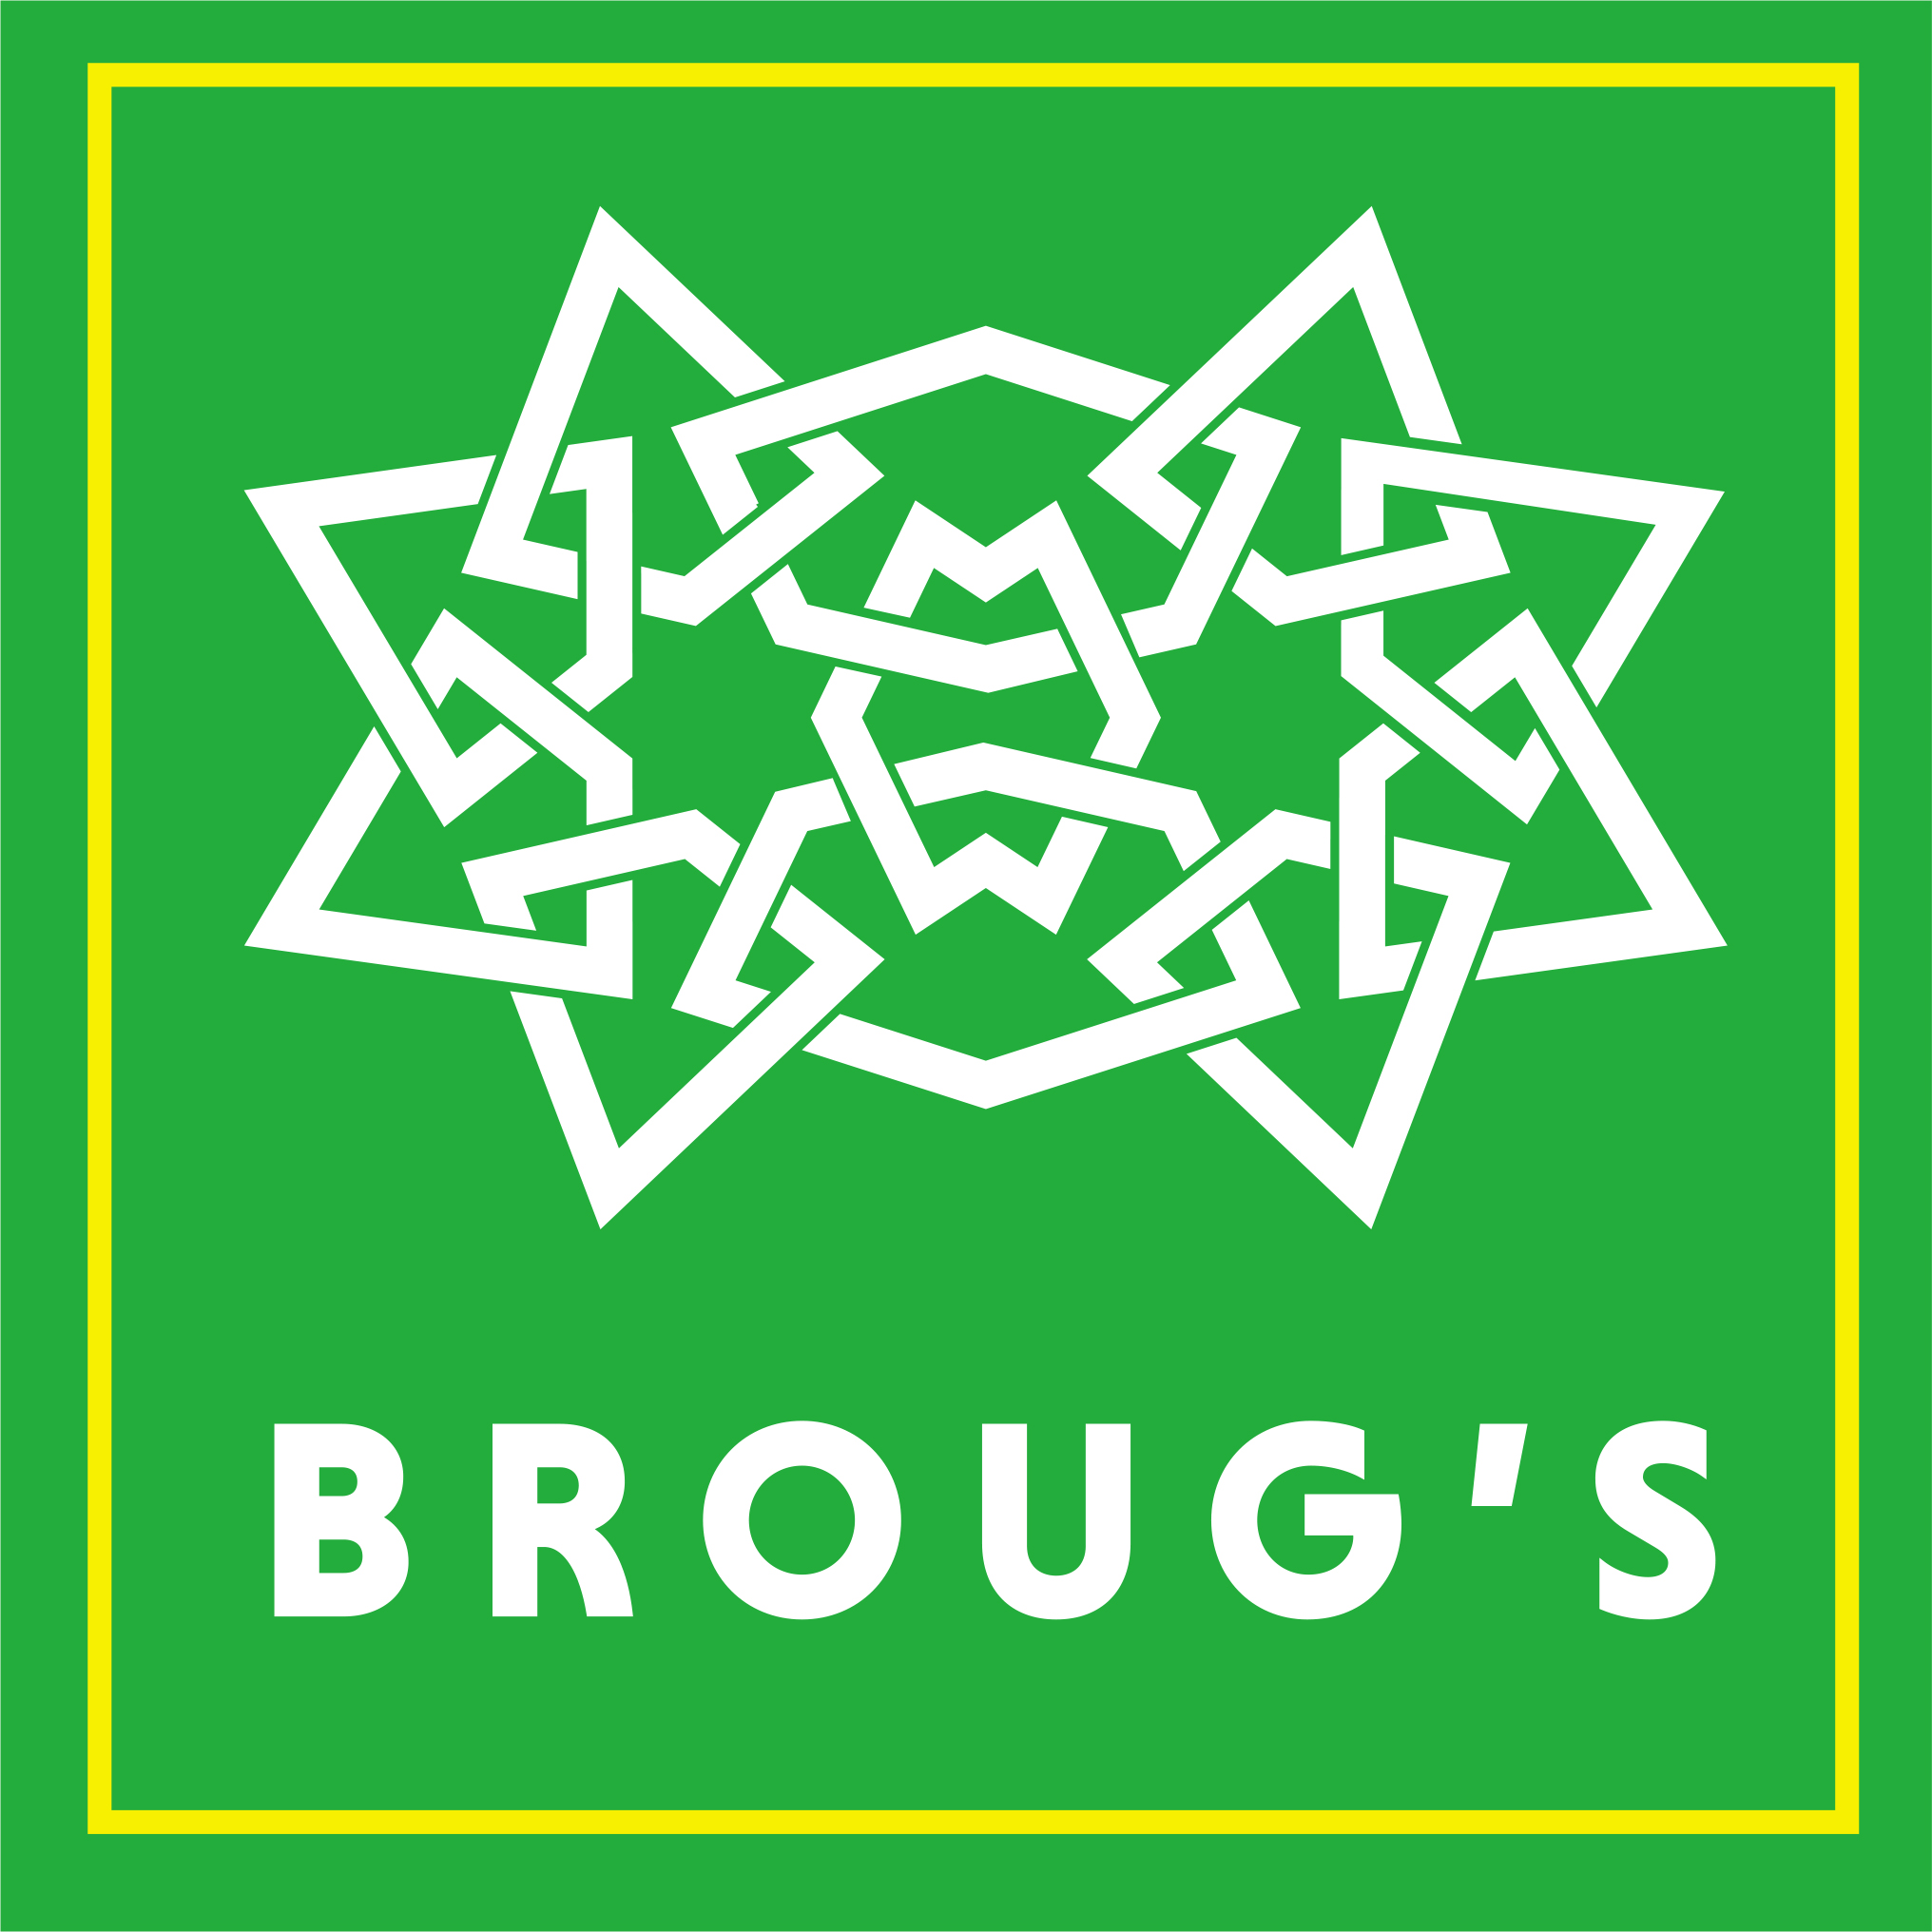 BROUG'S Shop | Hebden Bridge, West Yorkshire